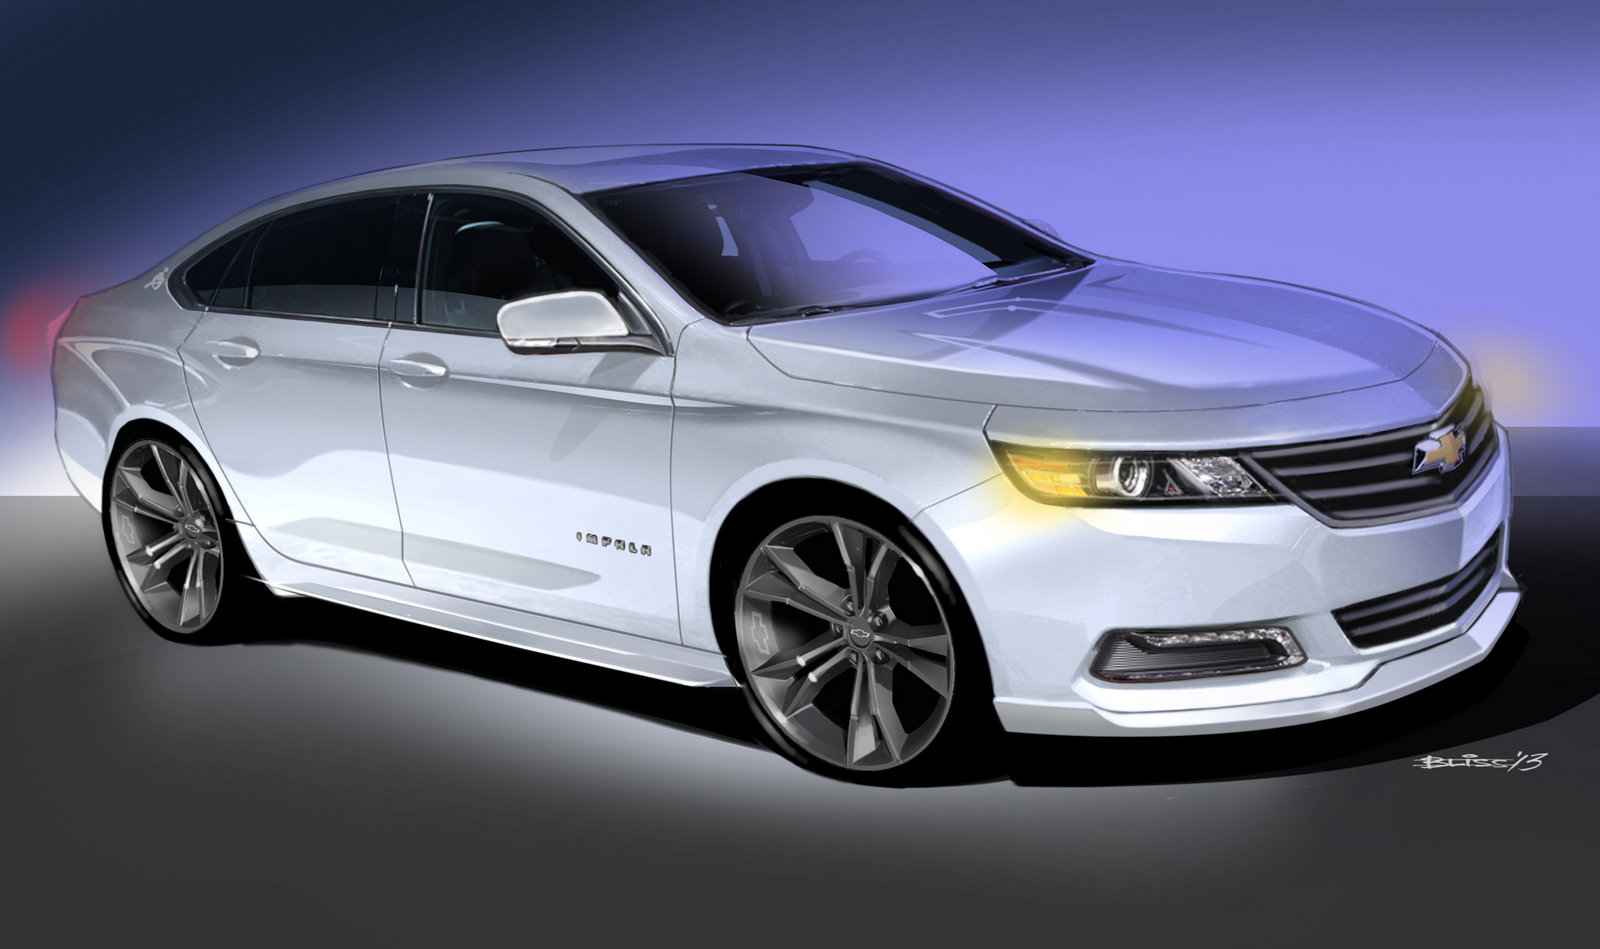 Impala 2014 chevrolet impala accessories : 2014 Chevrolet Impala Urban Cool Concept Review - Top Speed